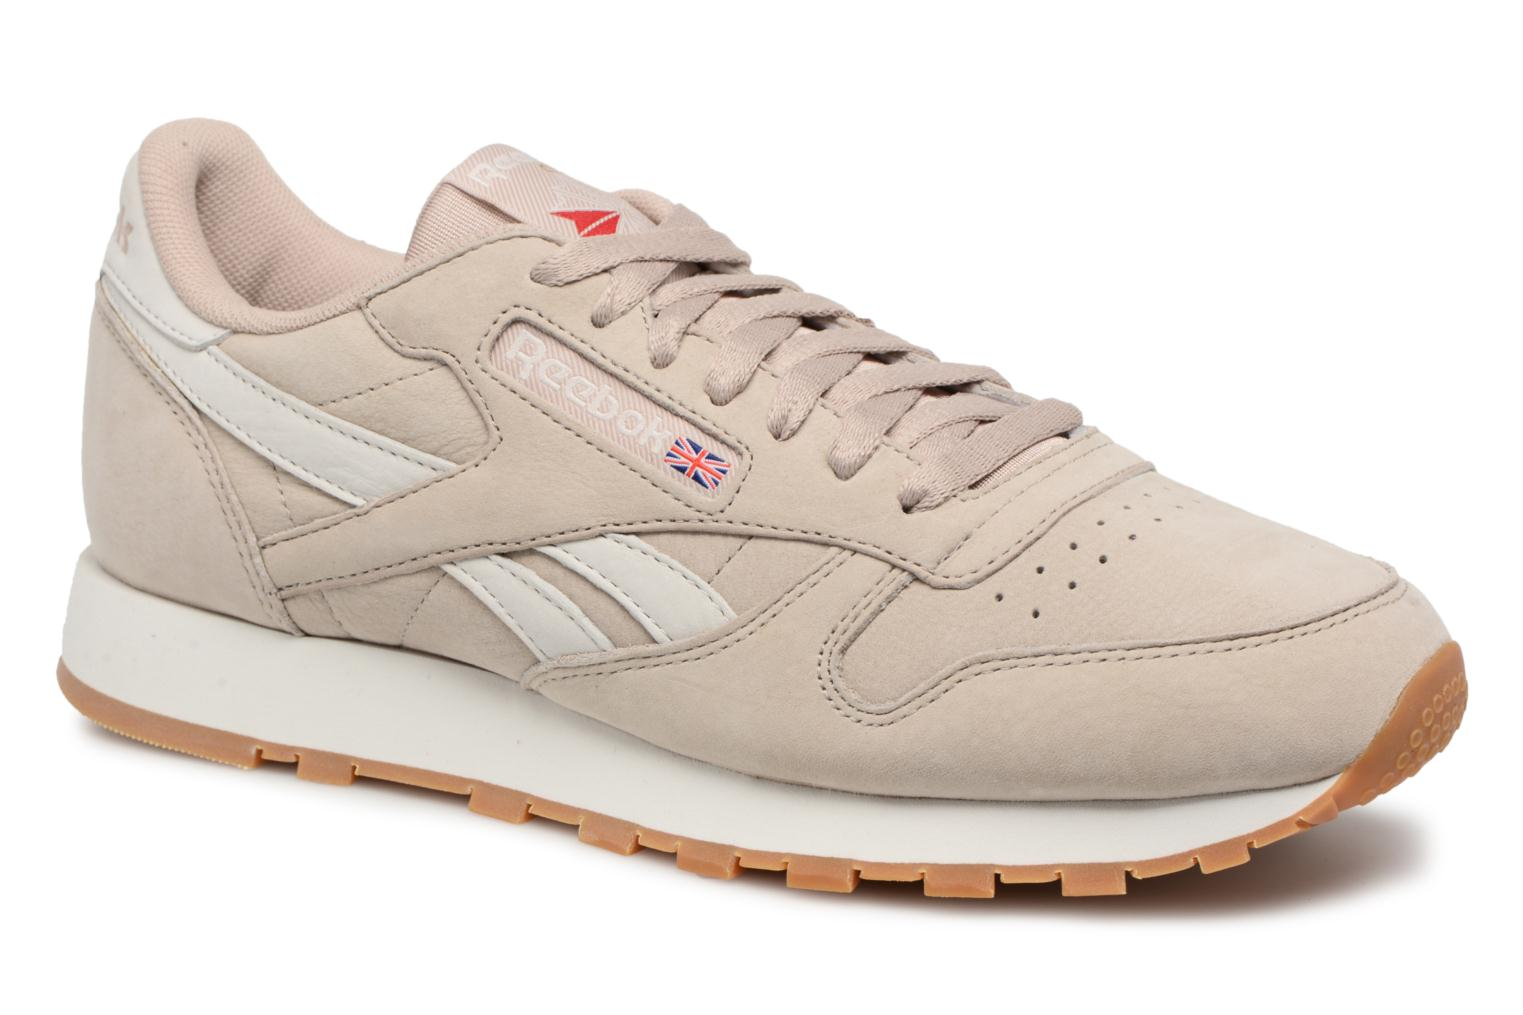 Reebok ClassicLeather Tl (Beige) - Baskets chez Sarenza (315969)